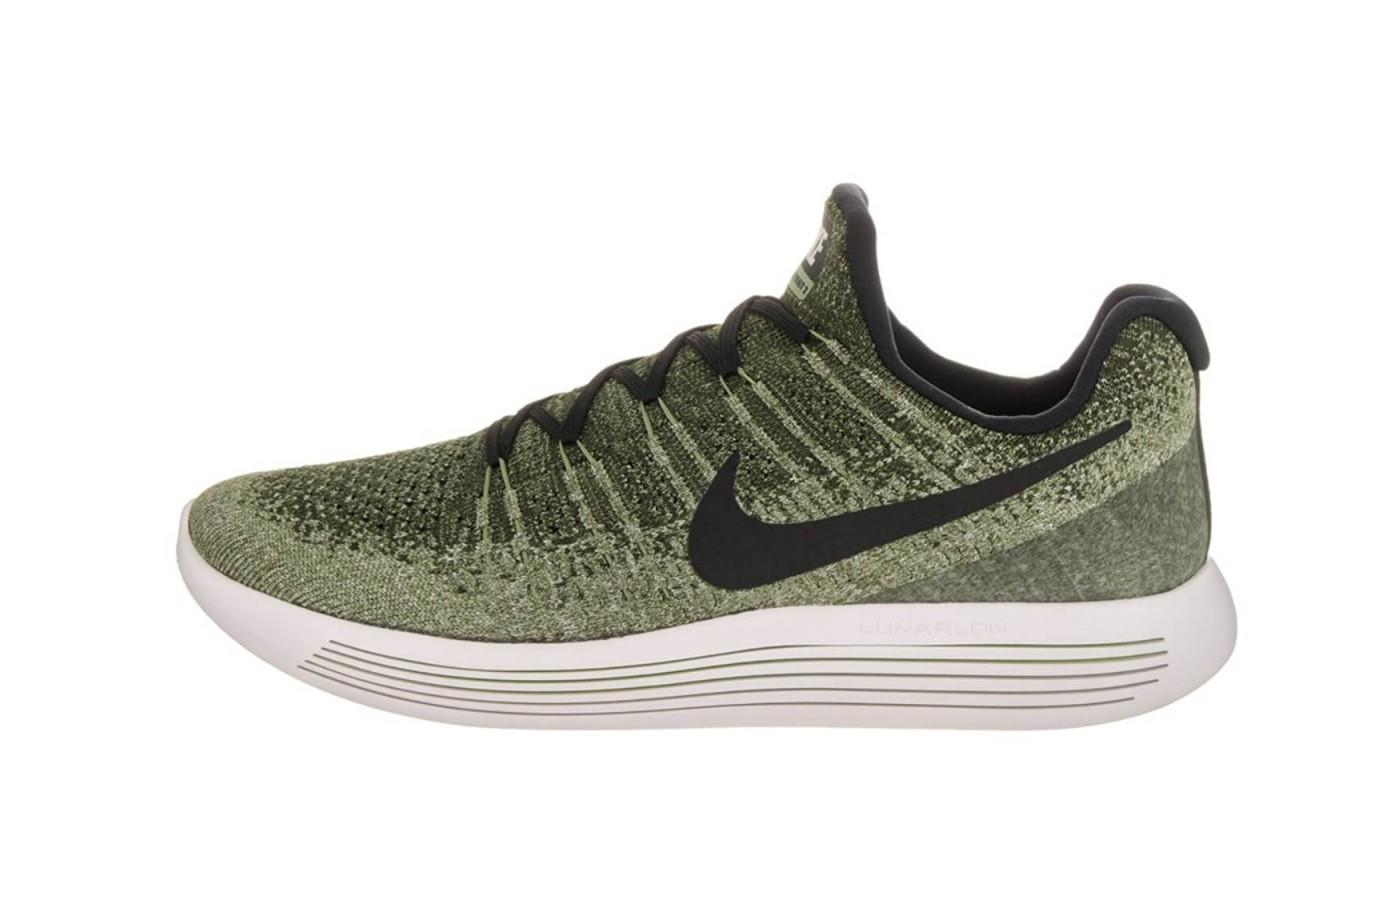 Nike LunarEpic Low Flyknit 2 - Buy or Not in Mar 2019  f196595be